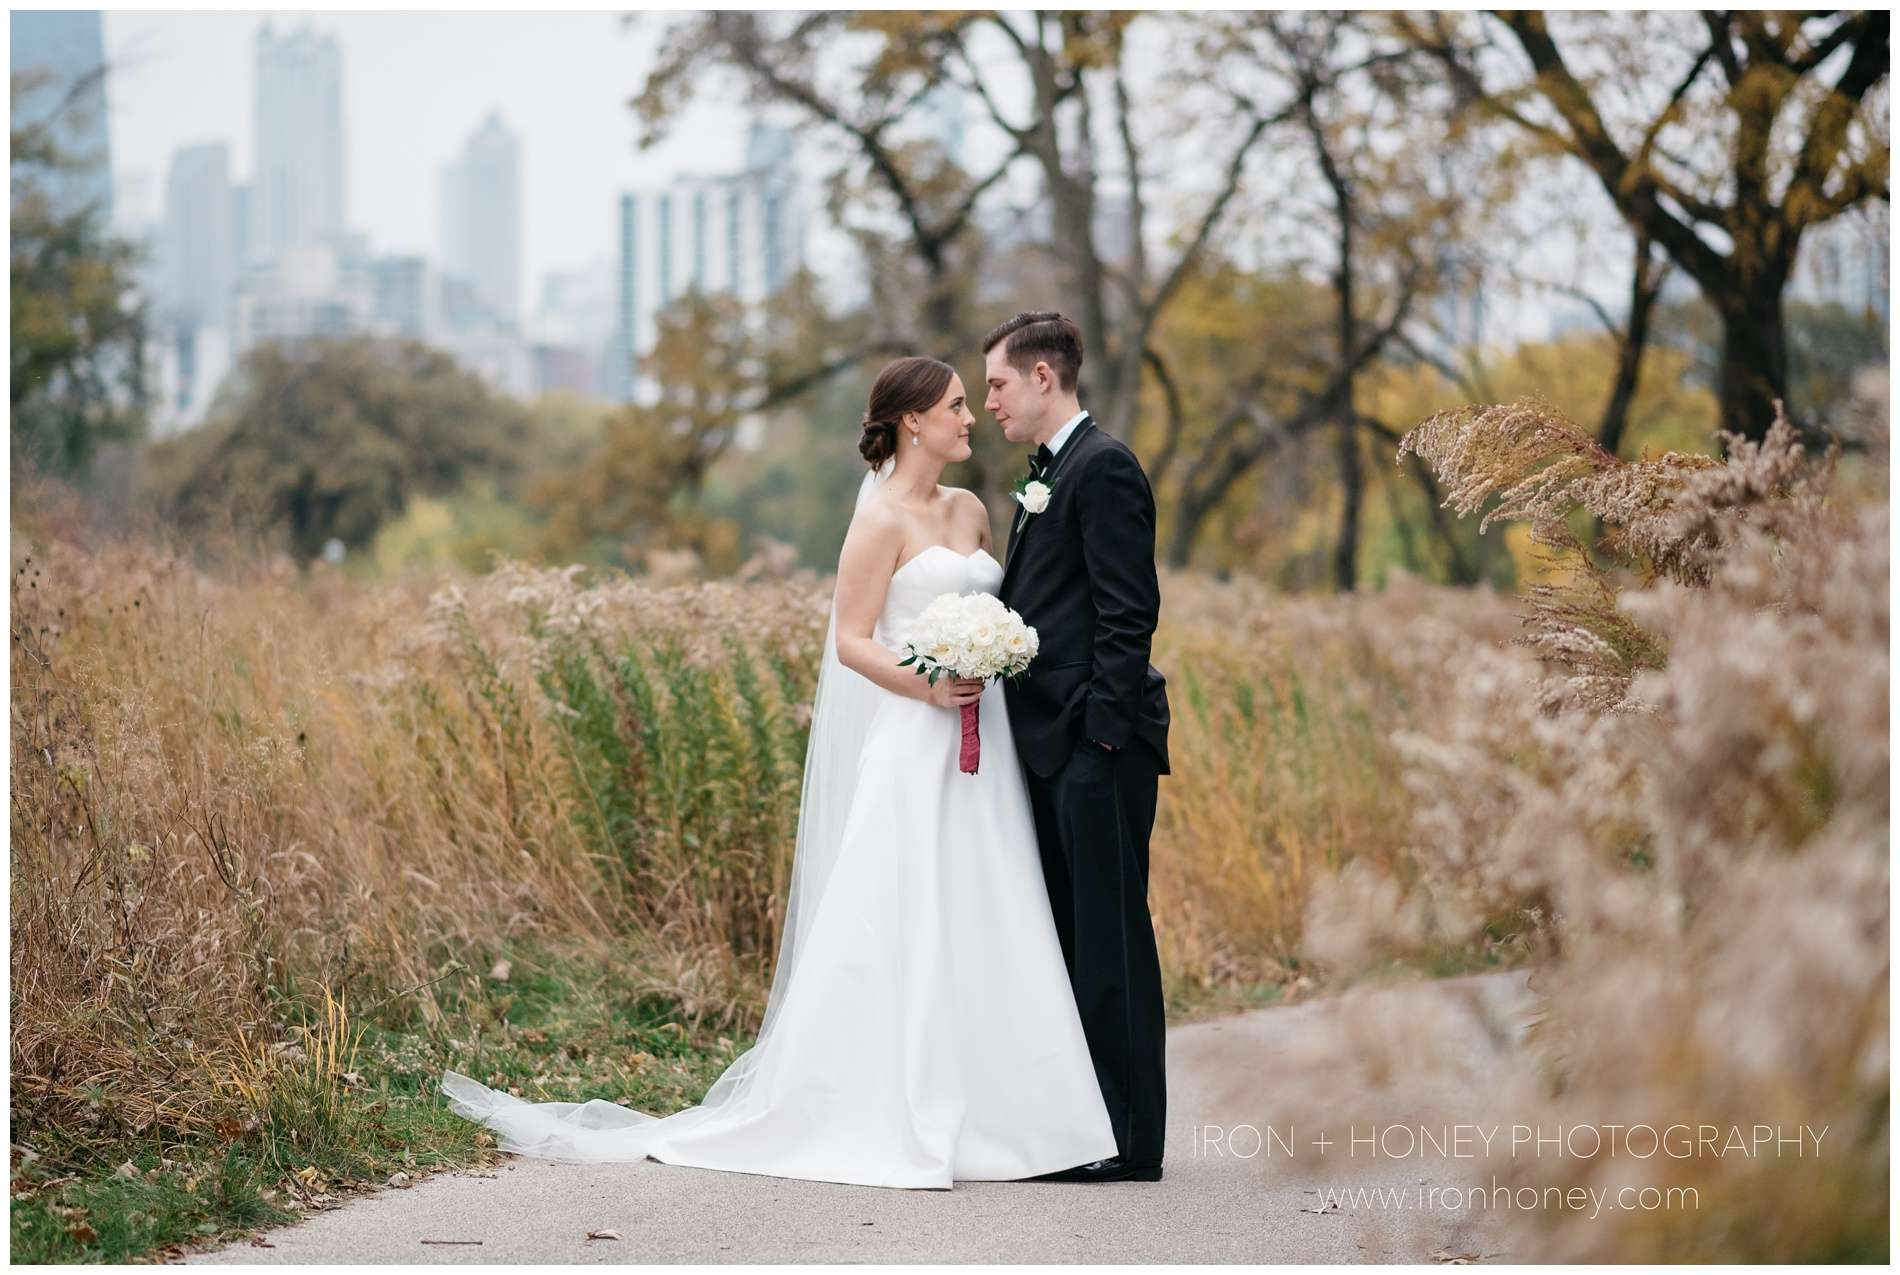 fall wedding, autumn wedding, salvatore's, st celement's, iron and honey photographer, melissa ferrara, lincoln park nature boardwalk, lincoln park, wedding, elopement, bridal party, bride and groom, belmonte's florist, becker's bridal, blush events, weddings 826, bianca bridal, backthird entertainment, kositchek's, chicago wedding photographer, chicago elopement photographer, chicago wedding, chicago wedding ideas, bridal party skyline